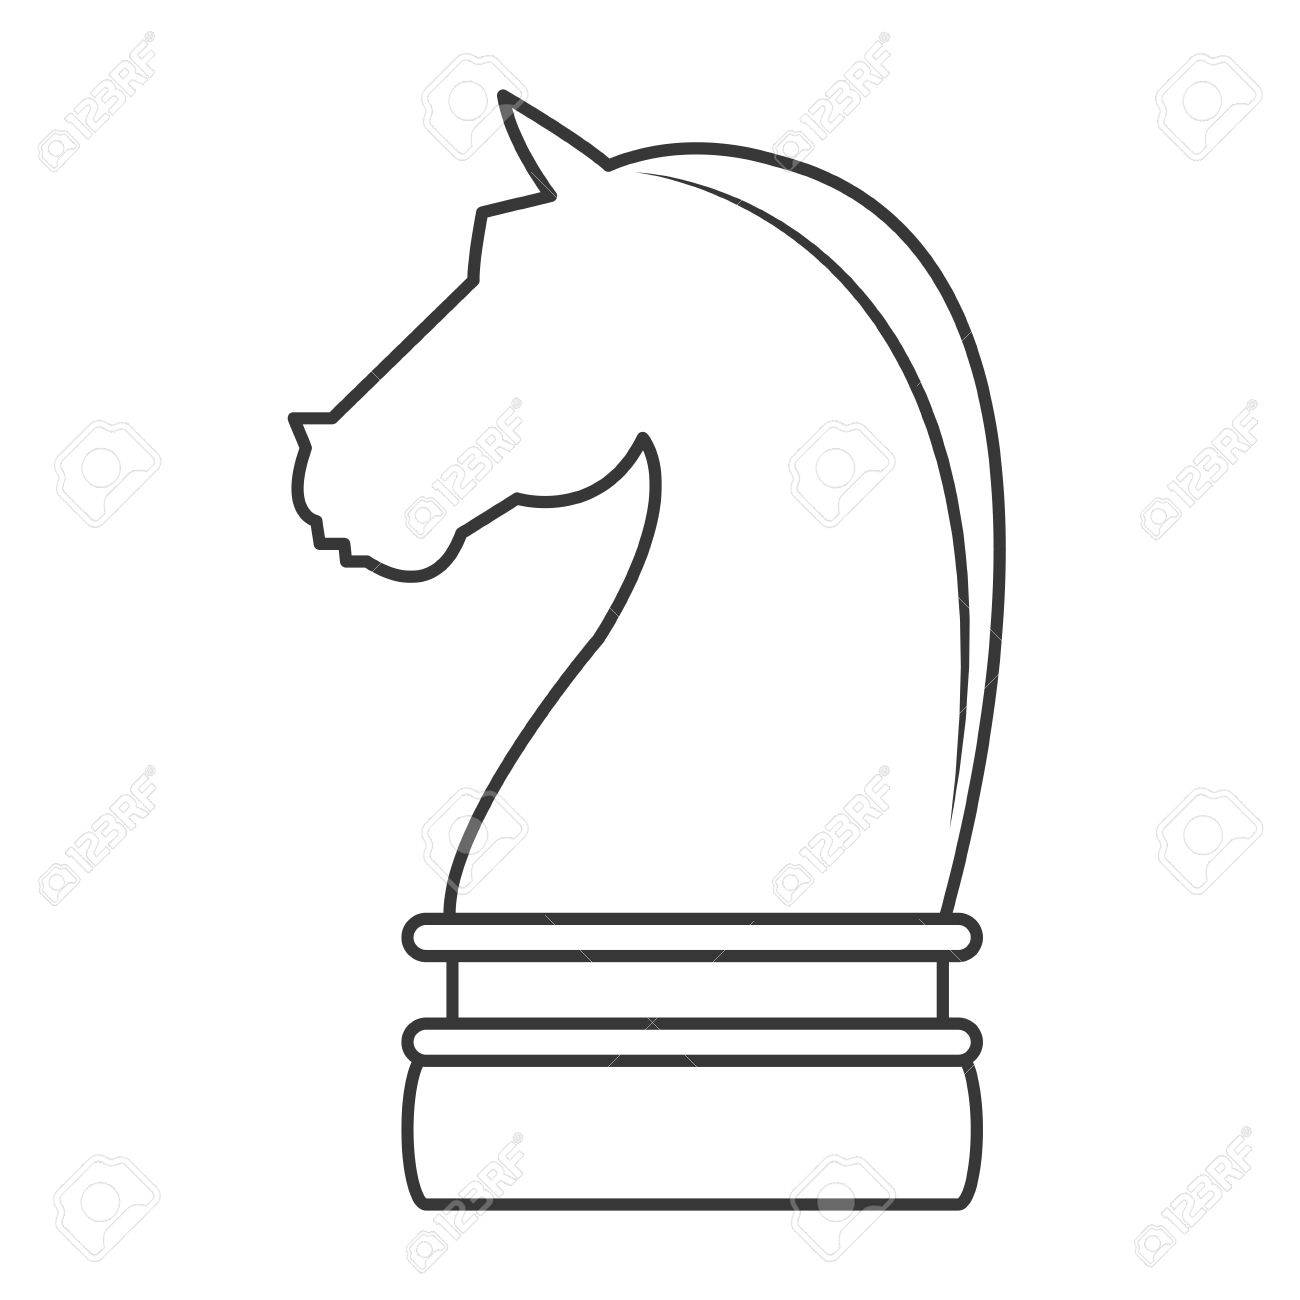 Flat Design Horse Chess Piece Icon Vector Illustration Royalty Free Cliparts Vectors And Stock Illustration Image 60549775